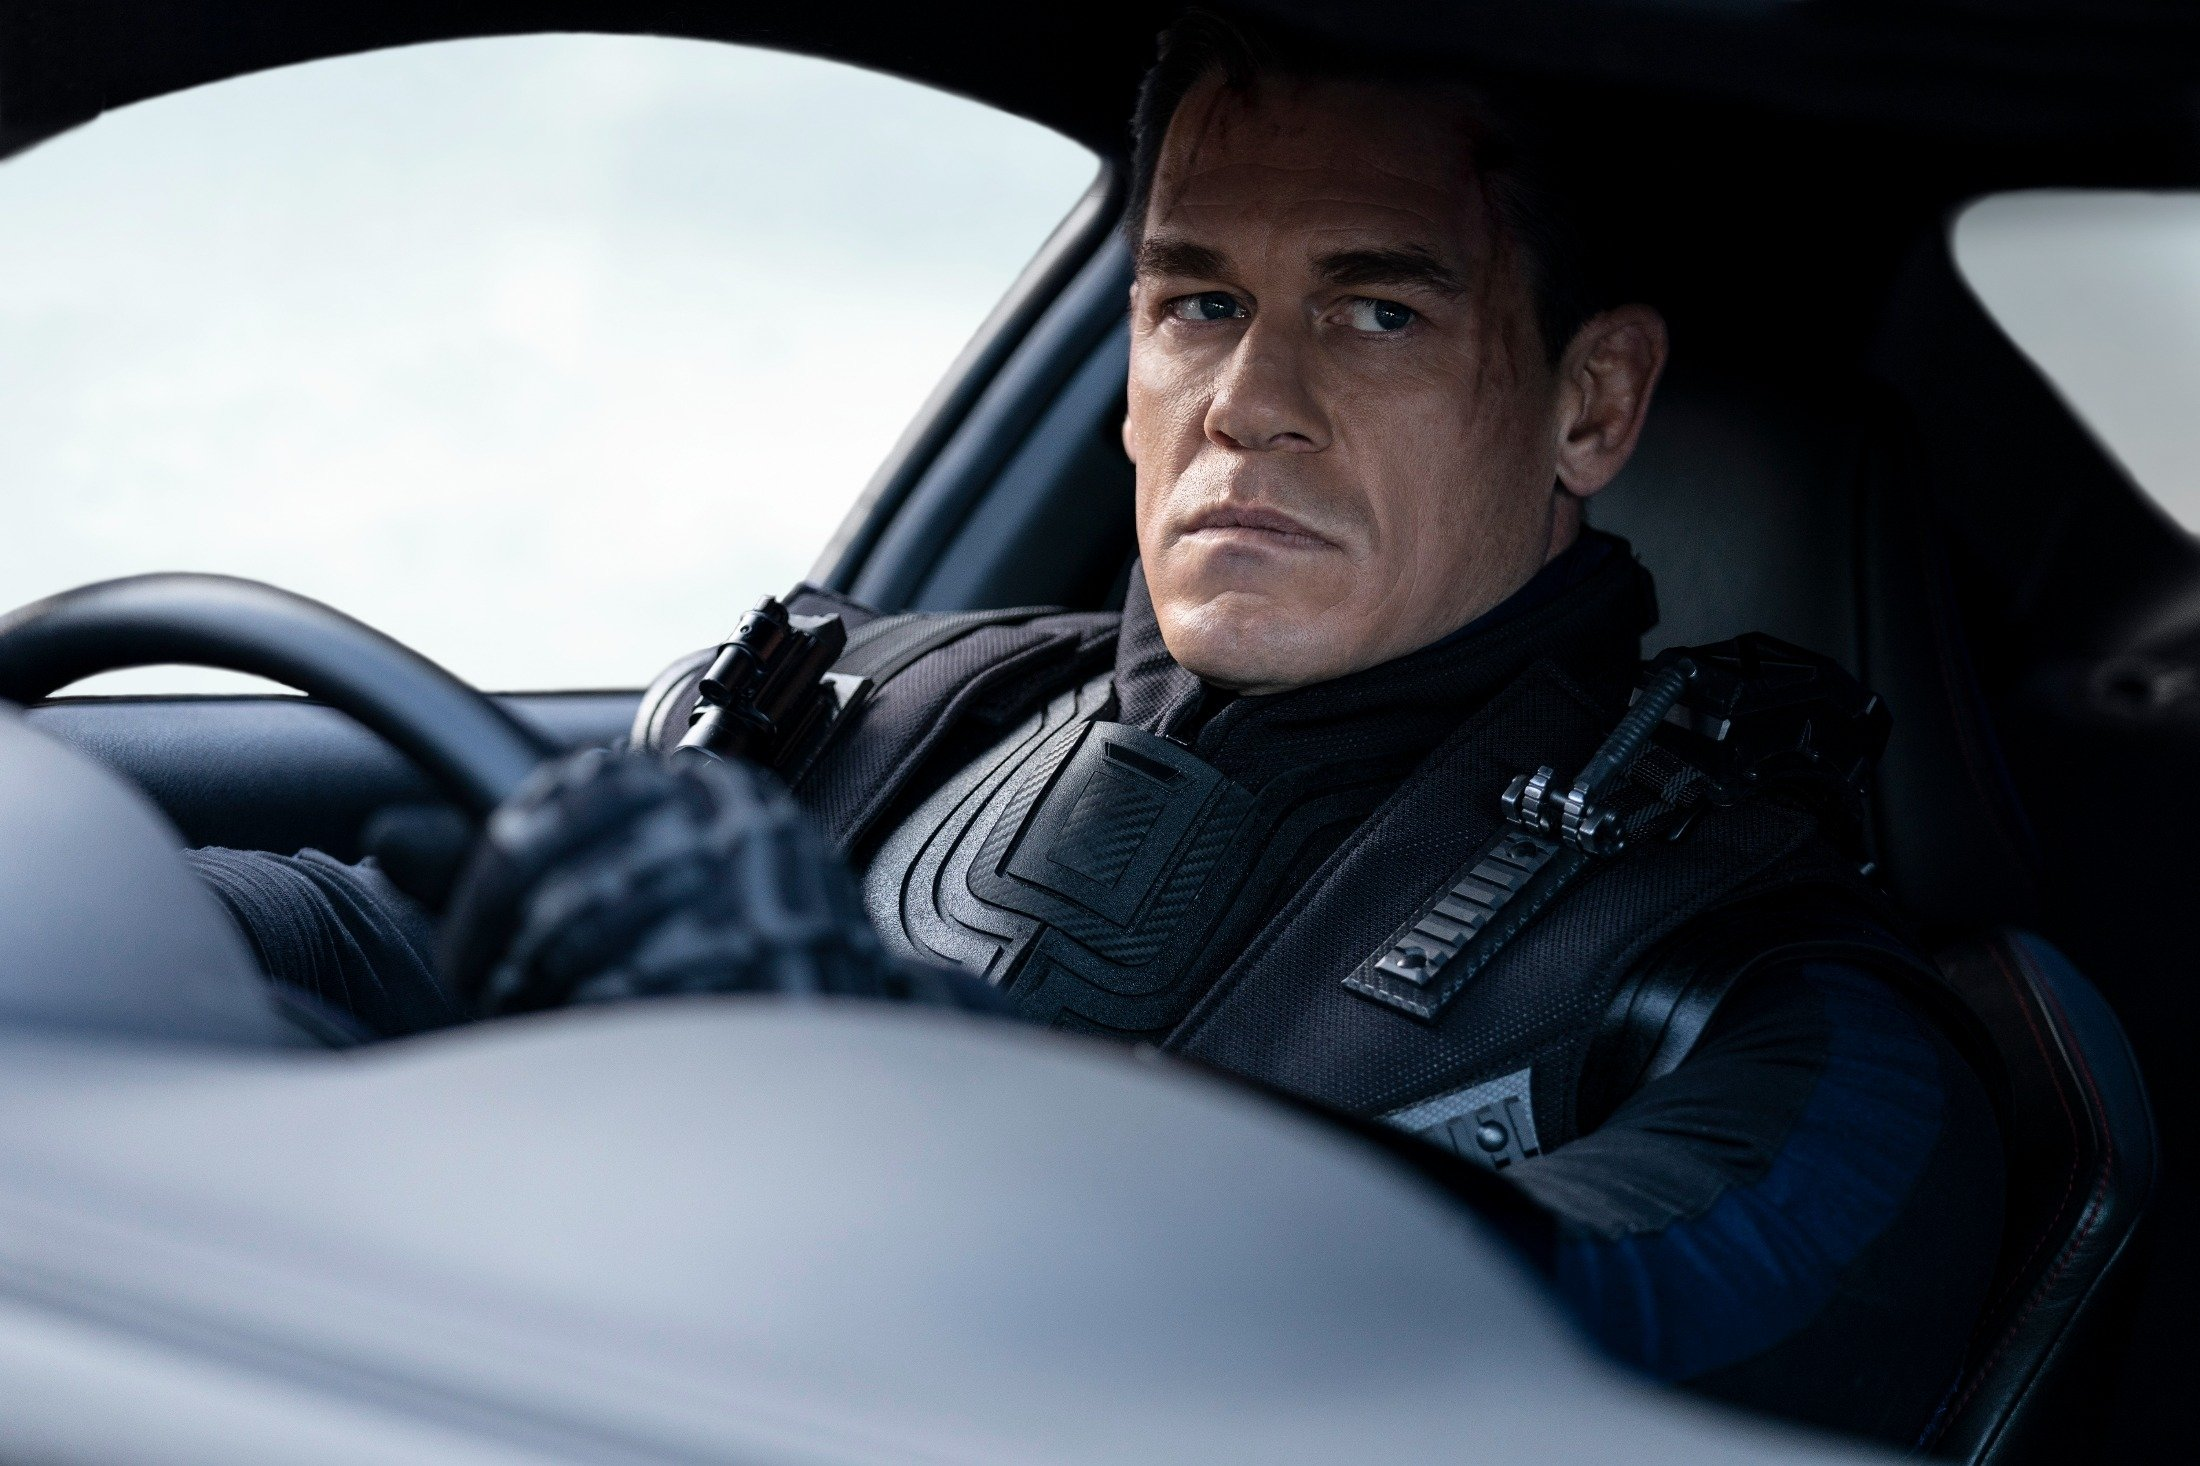 John Cena looks menacingly off camera as he drives in a scene from the movie'F9: The Fast Saga.' (Universal Pictures via AP)